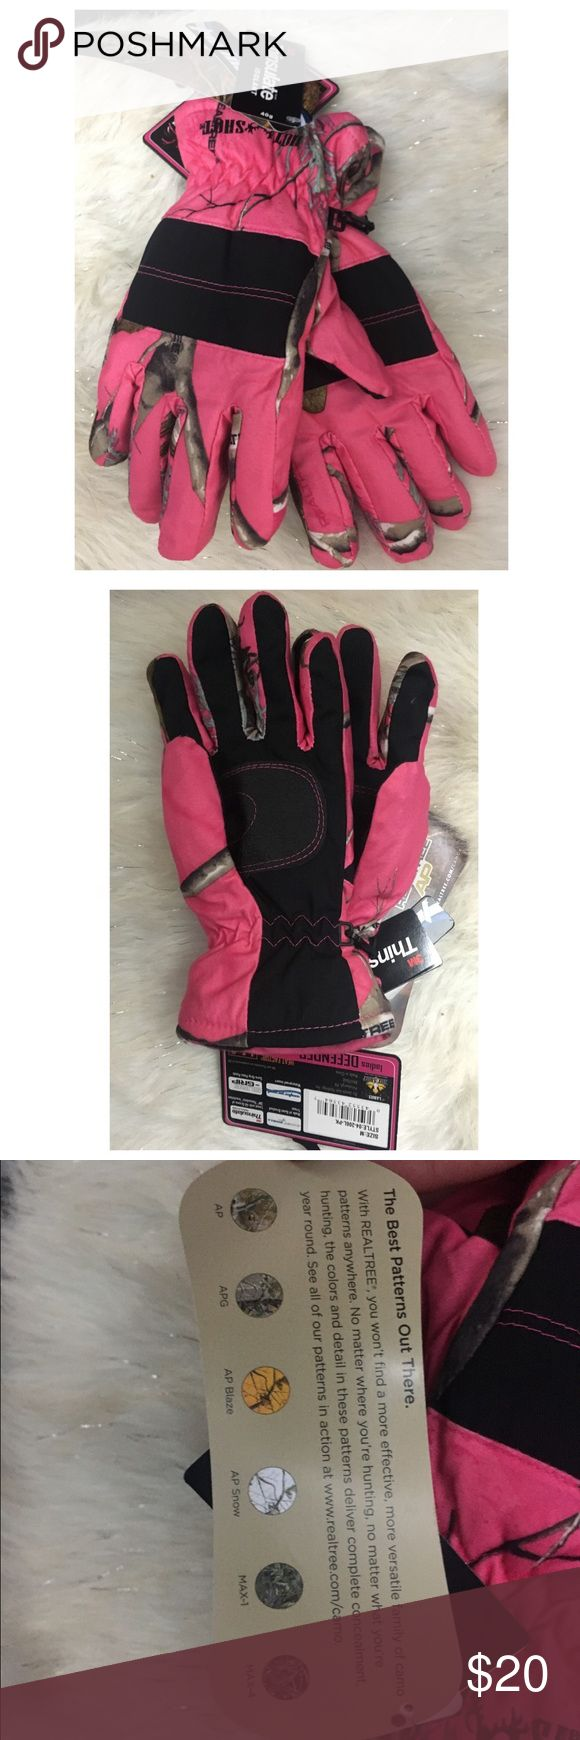 Ladies leather gloves with thinsulate - Pink Camo Realtree Gloves M Insulated Hot Shot Boutique